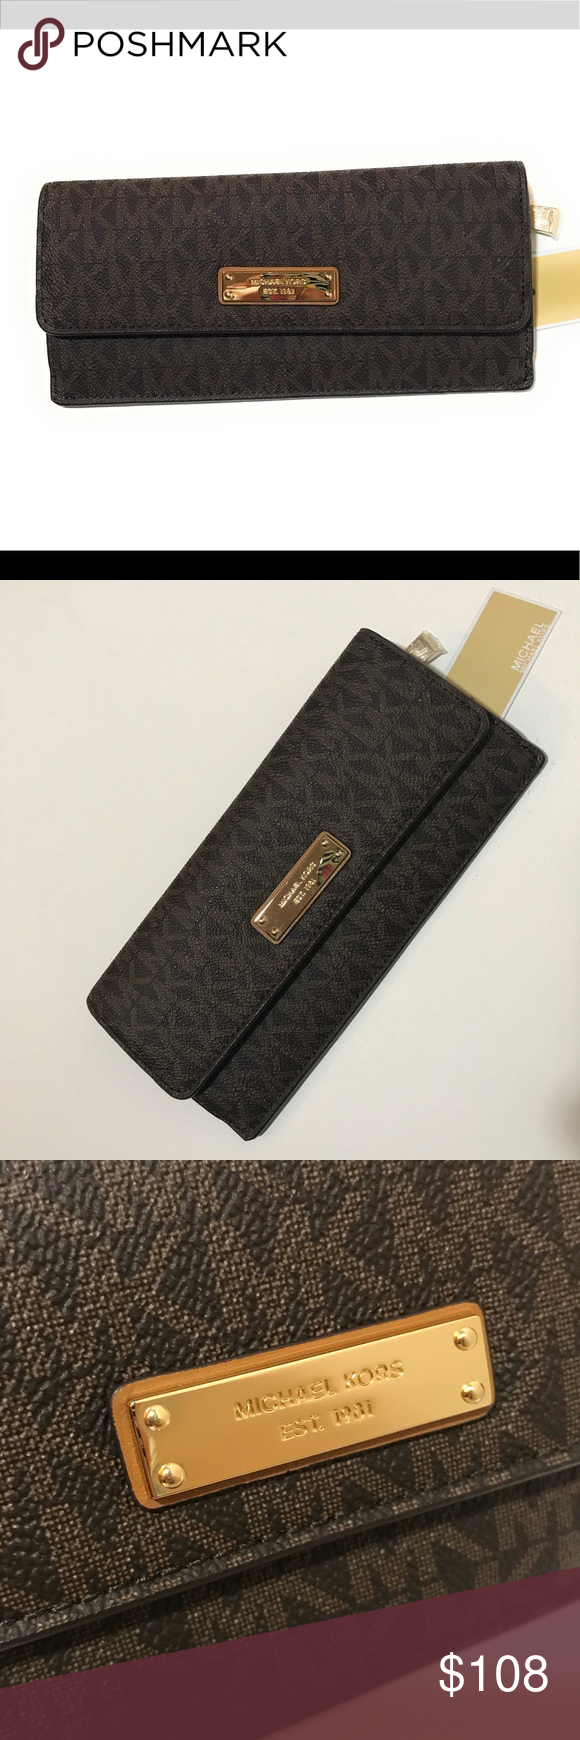 ef26c73d21f7 Michael Kors Brown MK money Pieces Flat Wallet NWT New with tags attached! Michael  Kors